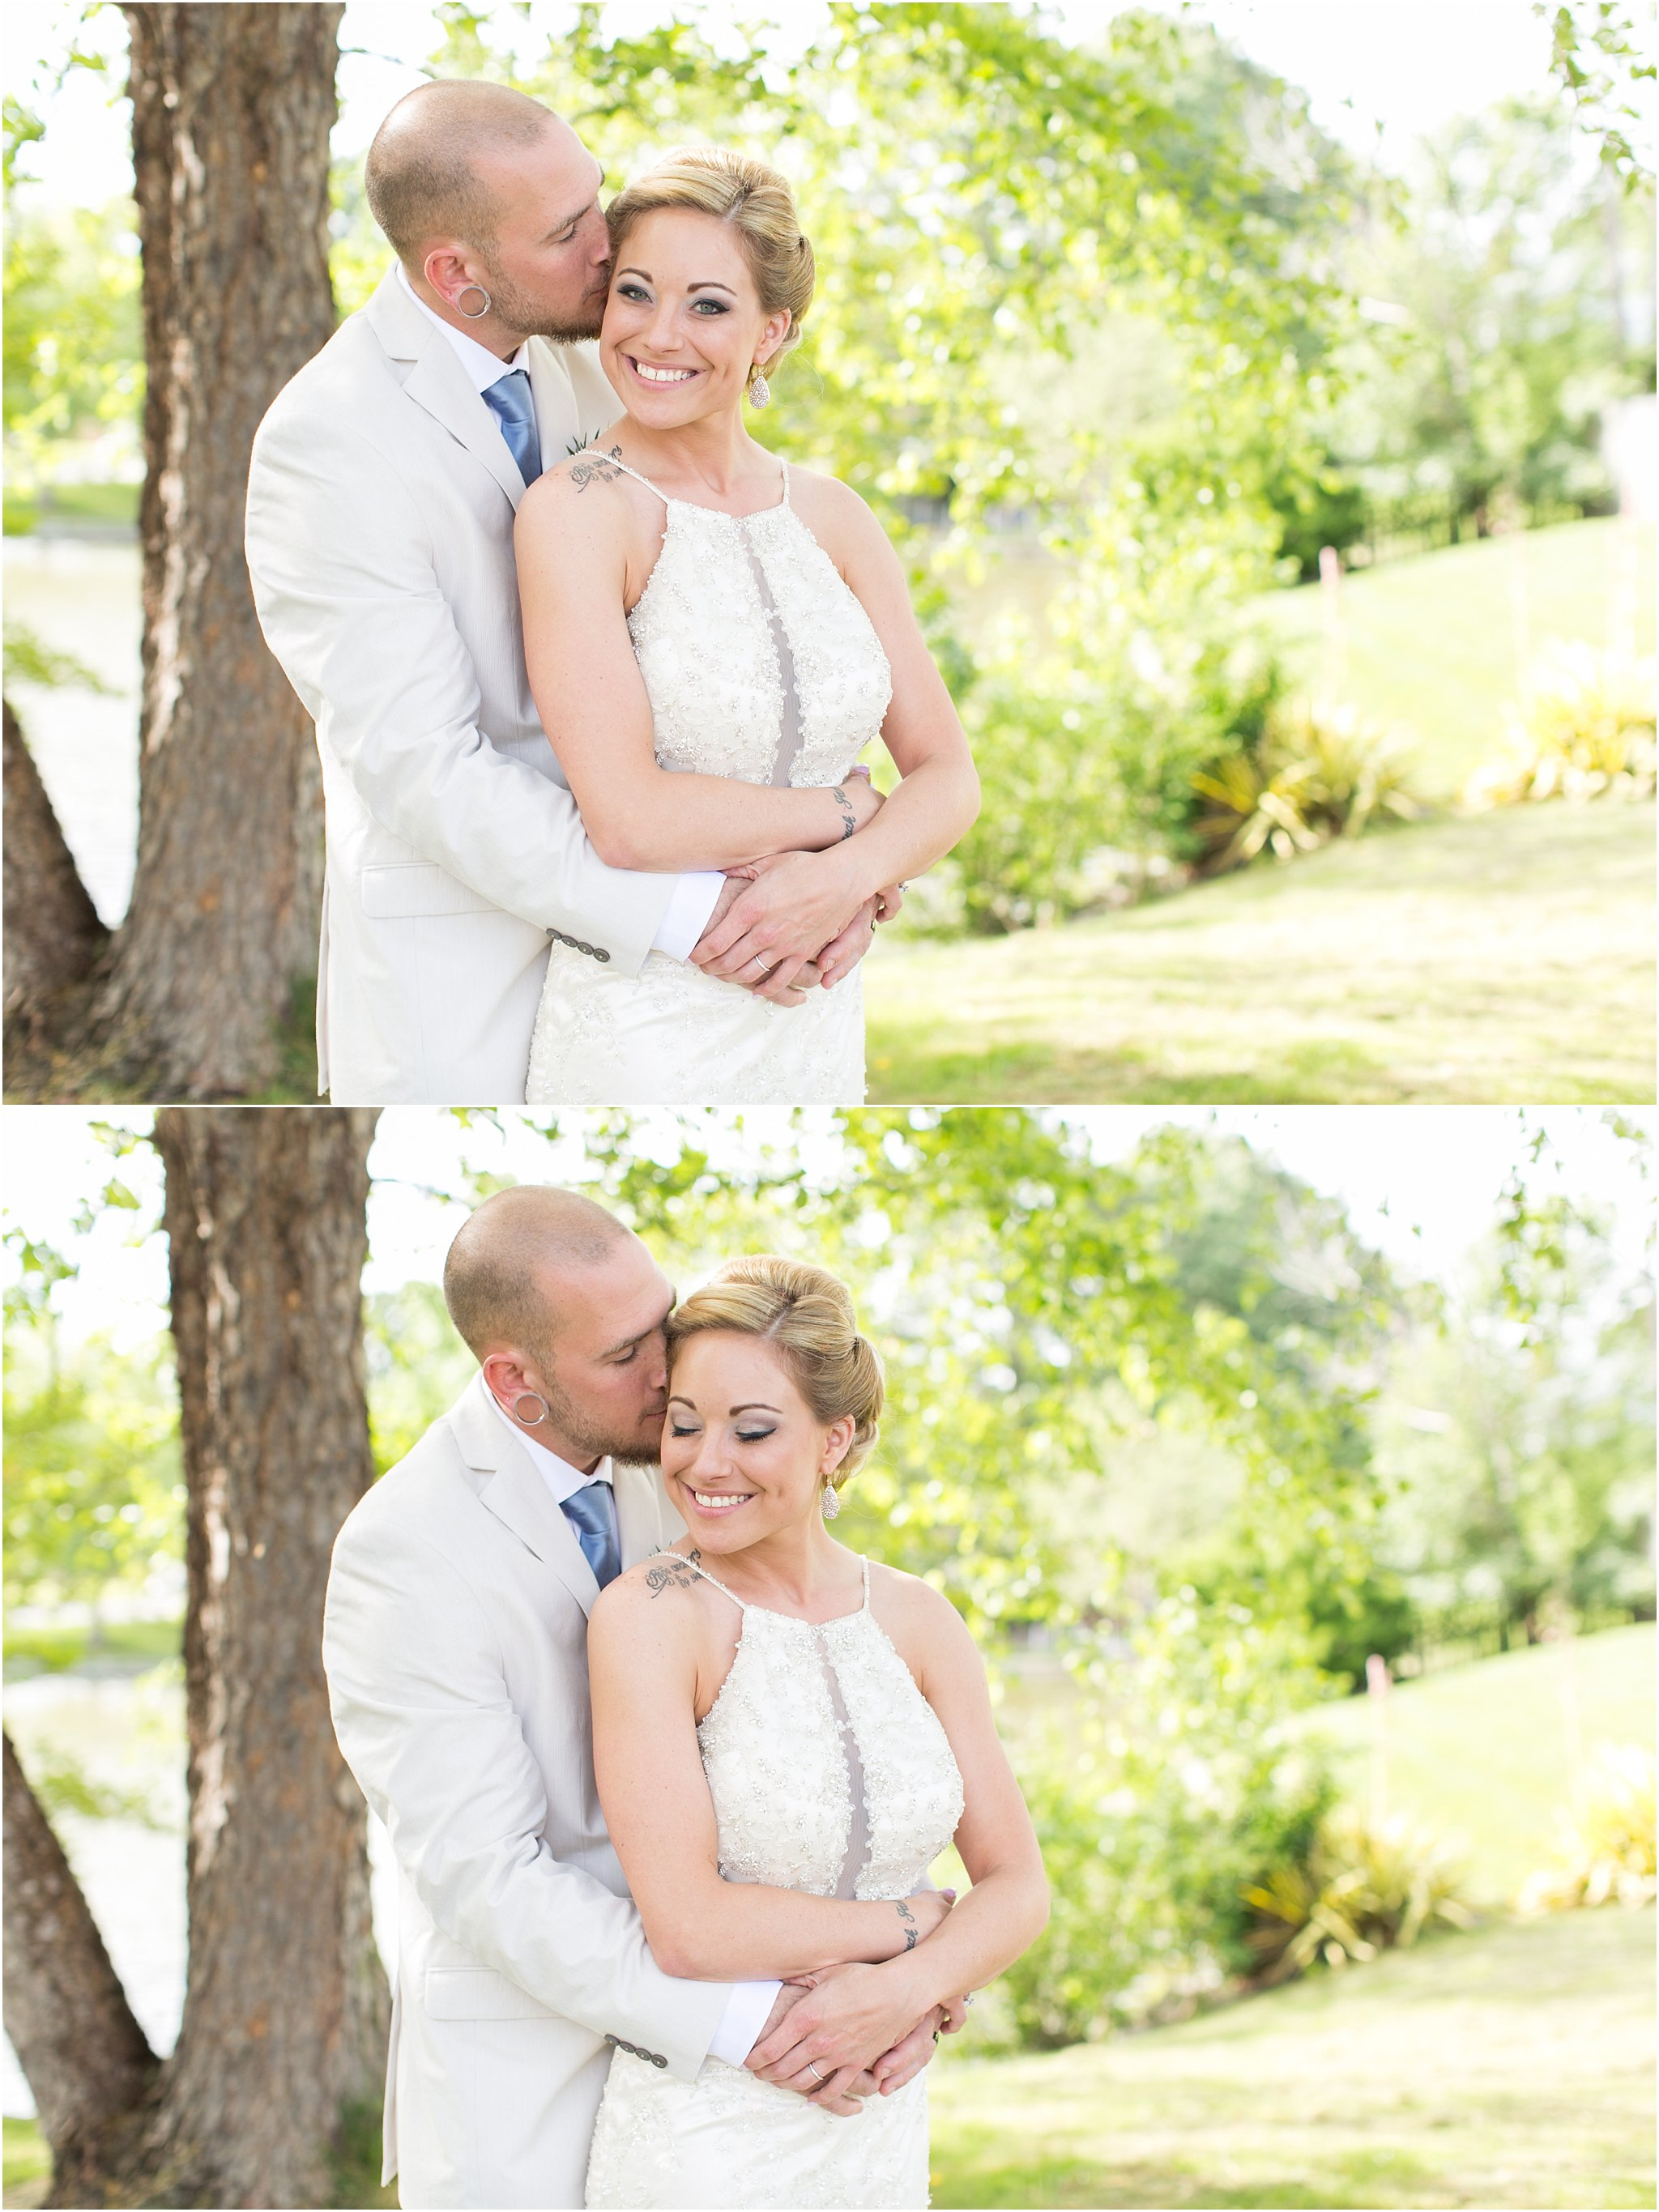 jessica_ryan_photography_virginia_virginiabeachweddingphotographer_studioIdo_backyardwedding_waterfrontwedding_1685